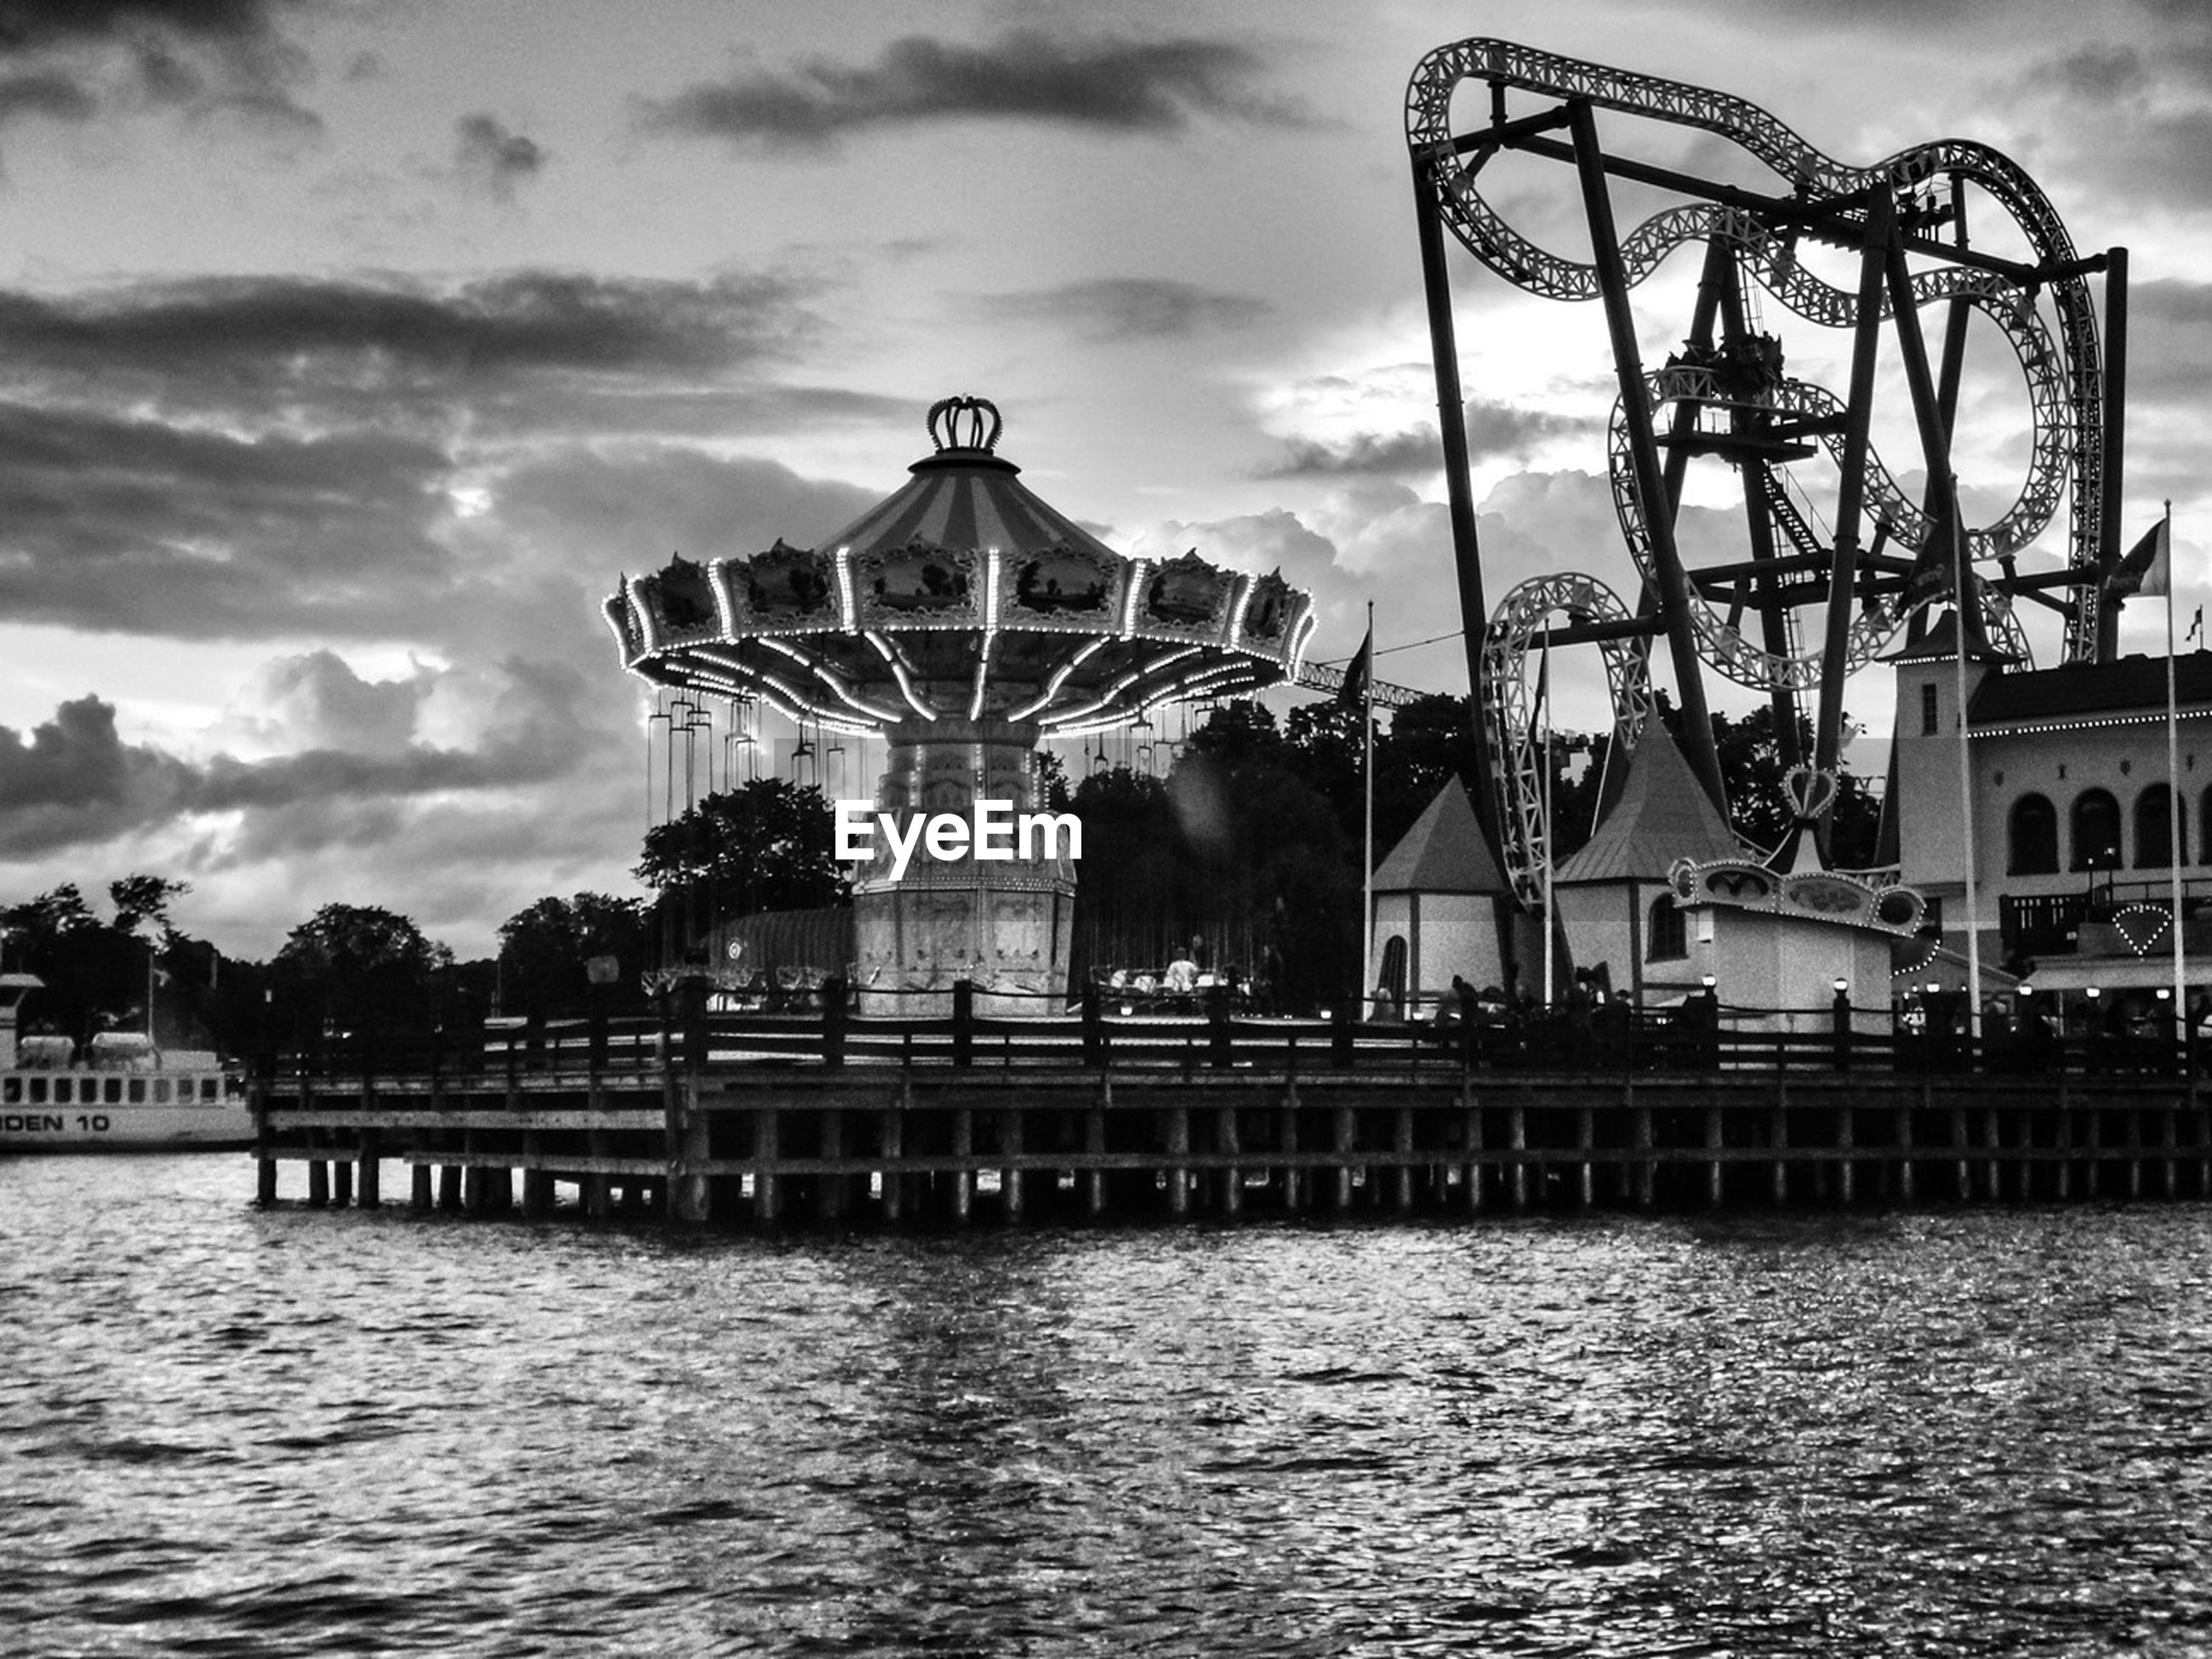 architecture, built structure, sky, water, building exterior, waterfront, cloud - sky, river, cloud, cloudy, rippled, tree, outdoors, low angle view, no people, reflection, day, ferris wheel, connection, travel destinations